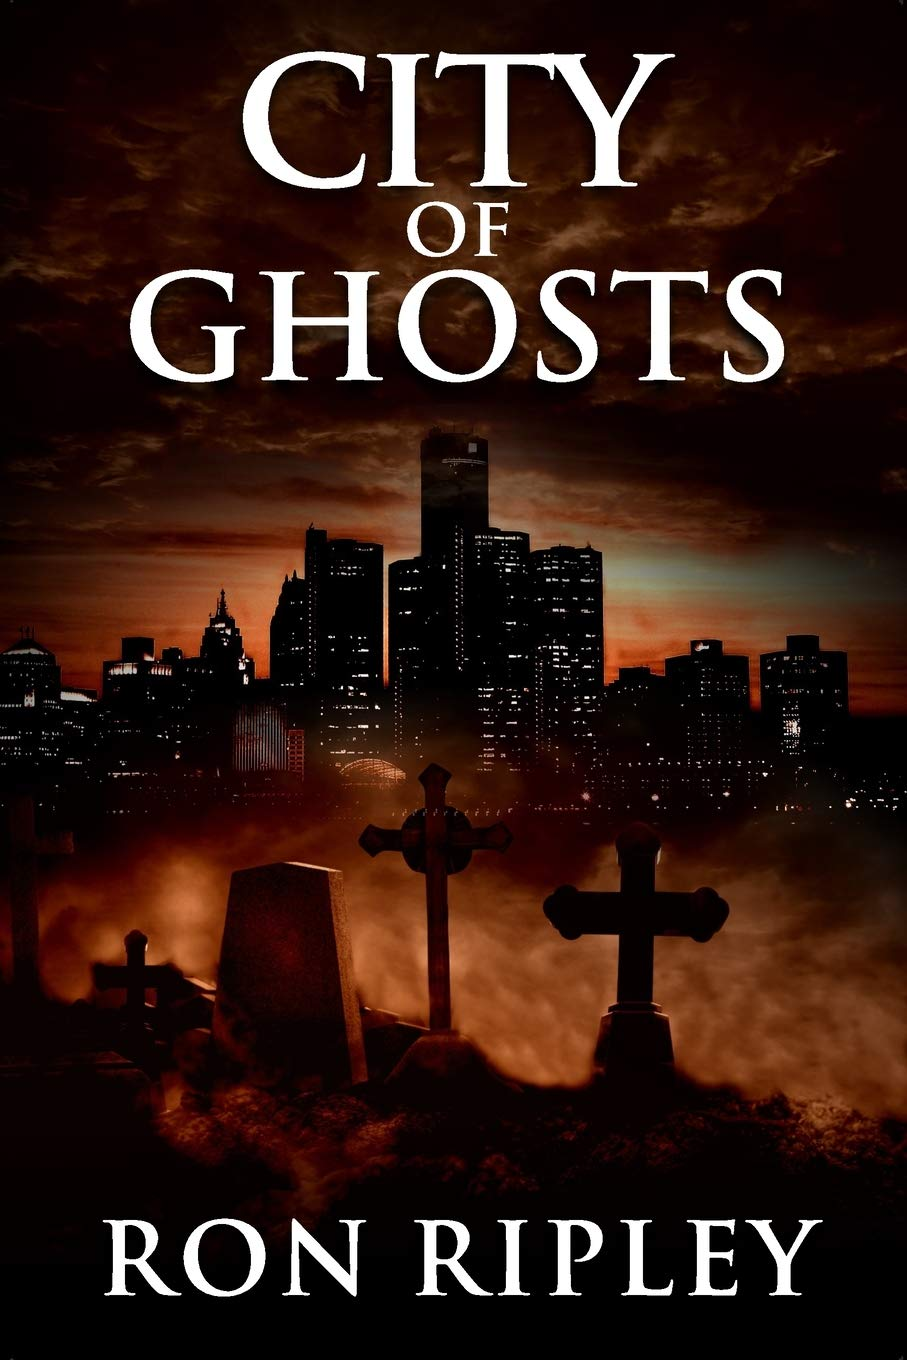 City of Ghosts: Supernatural Horror with Scary Ghosts ...